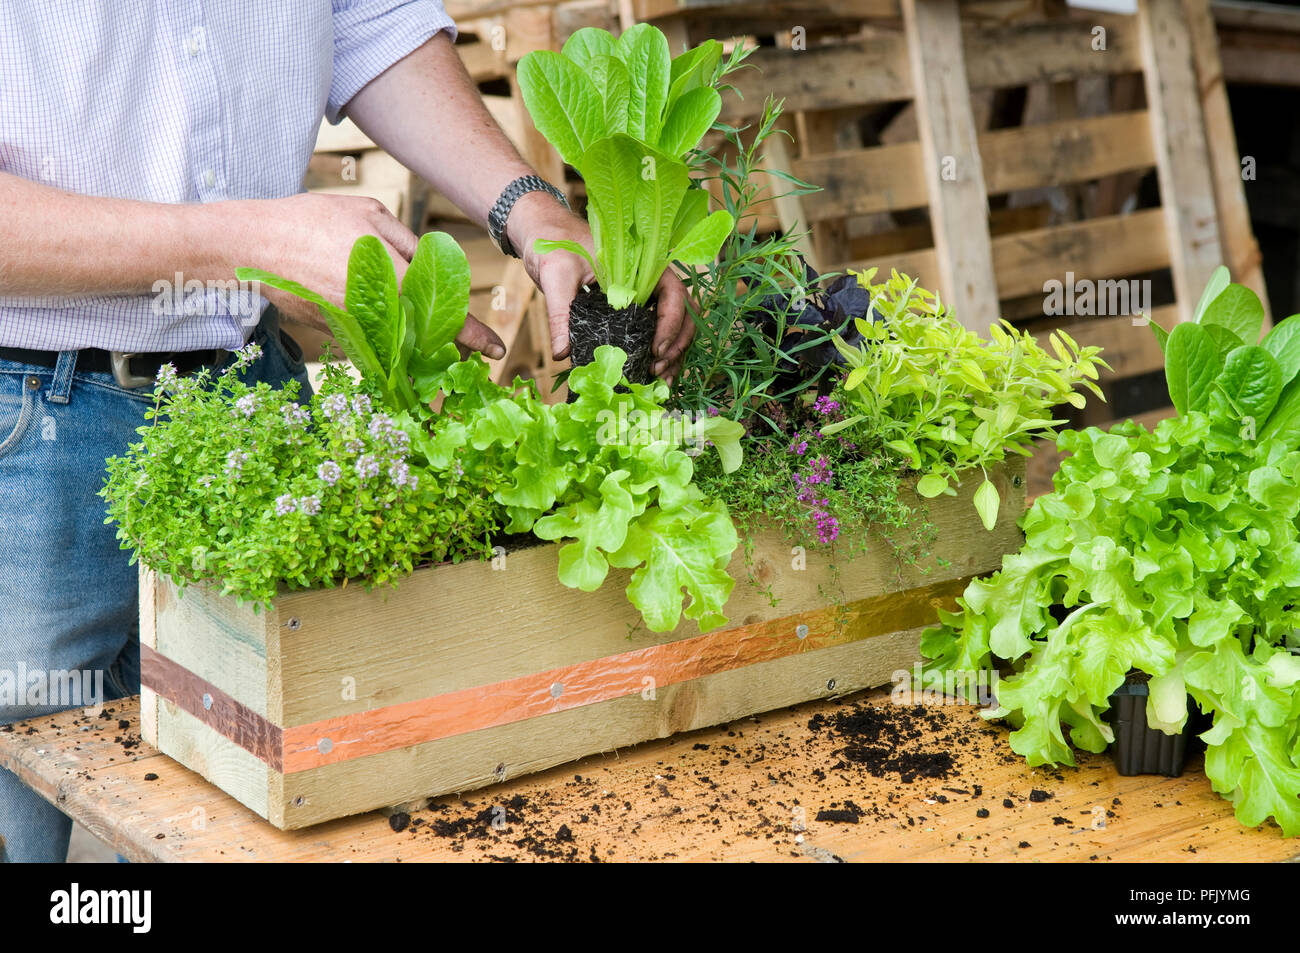 Planting herbs and salad leaves in window box, including lettuce, thyme, purple basil, marjoram - Stock Image